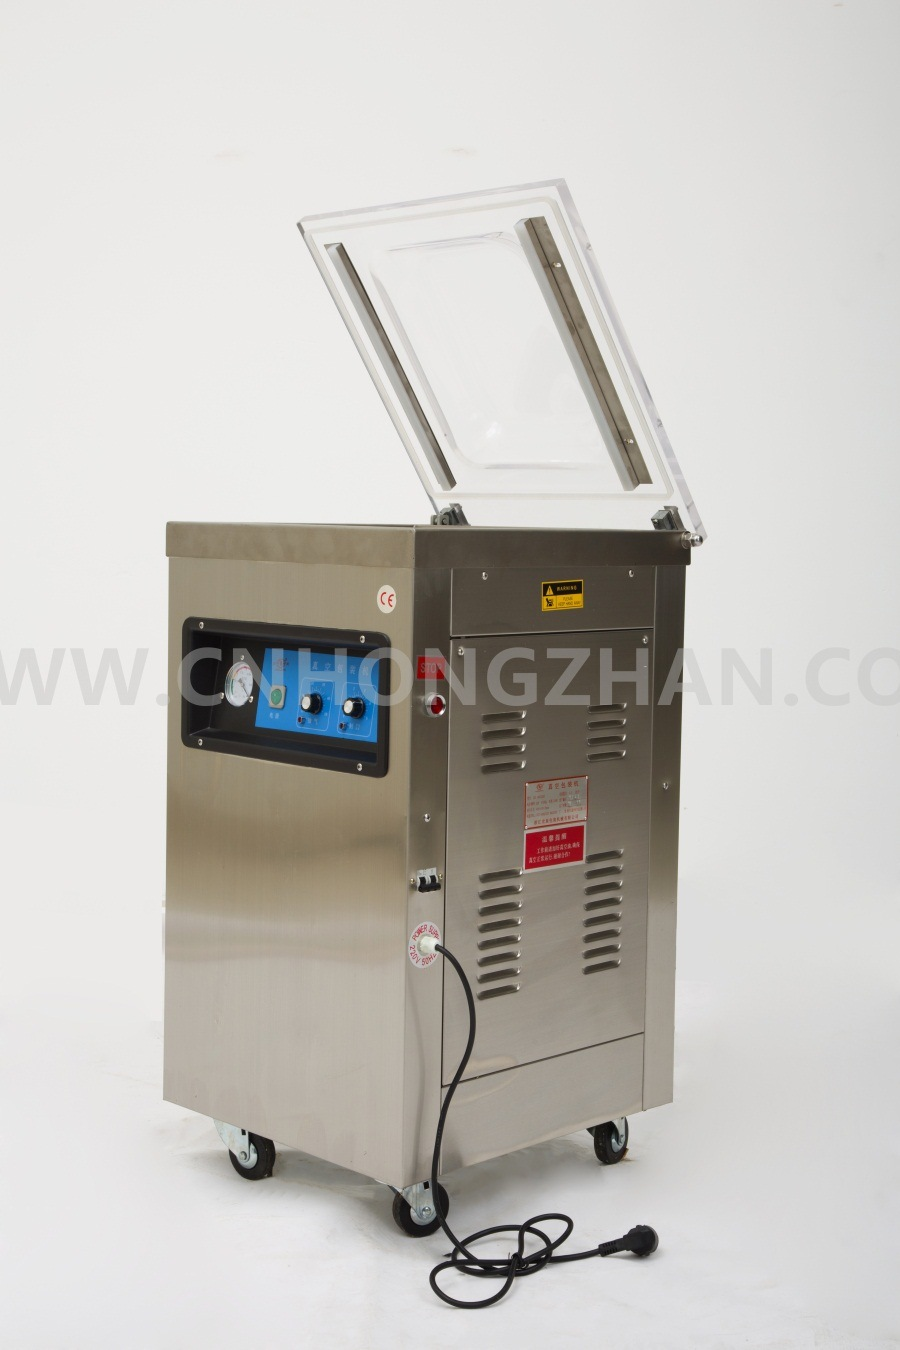 Hongzhan Dz4002D Stand Operate Vacuum Packing Machine pictures & photos